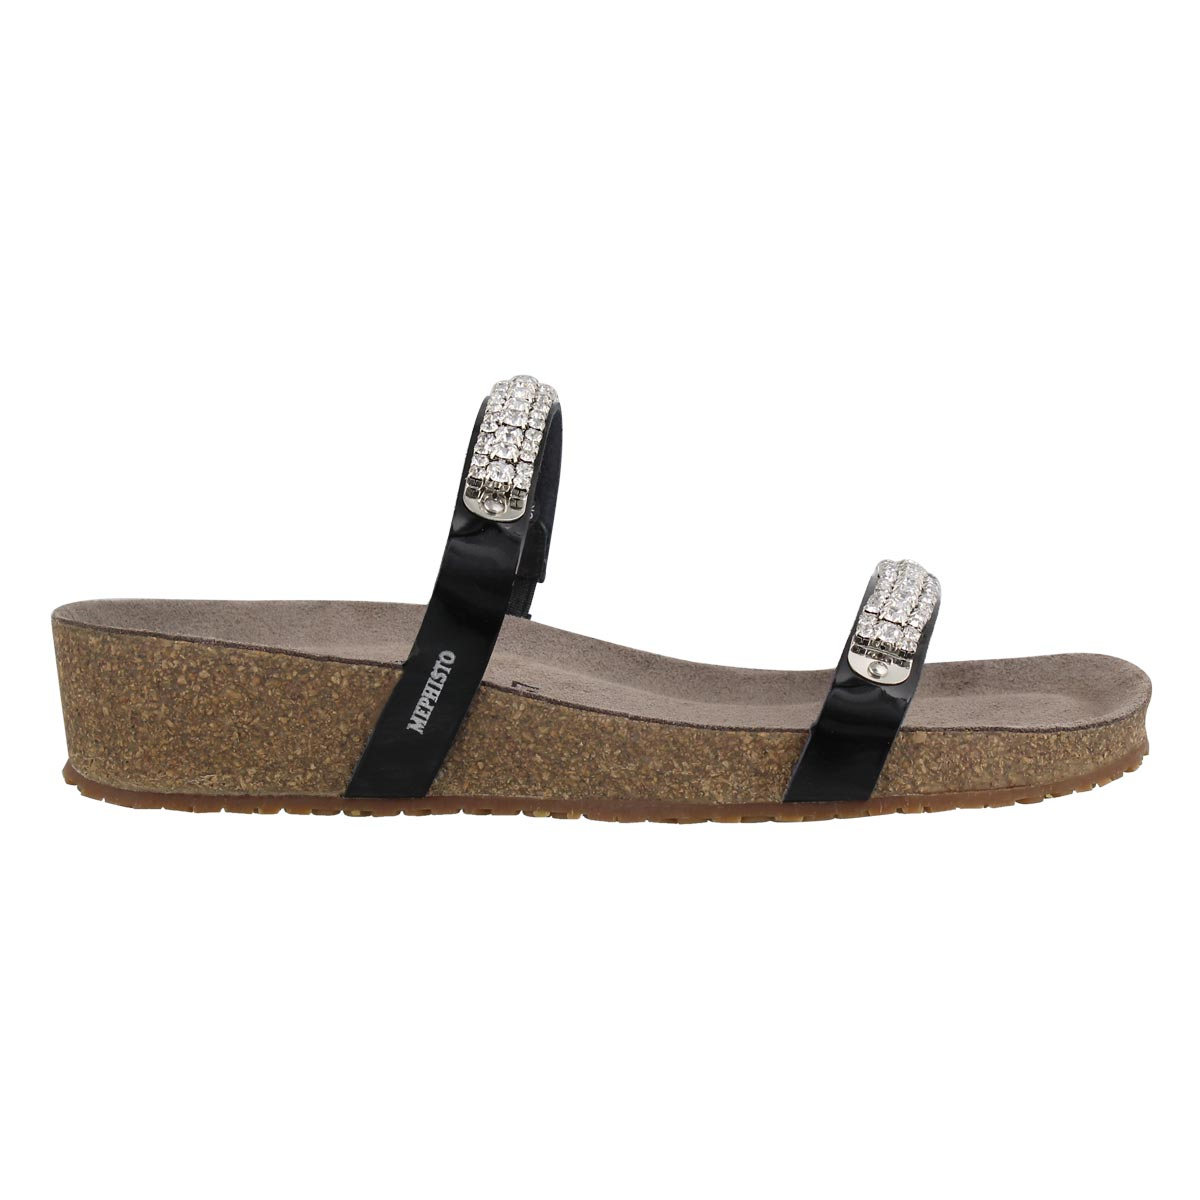 Lds Ivana blk wedge cork footbed sandal